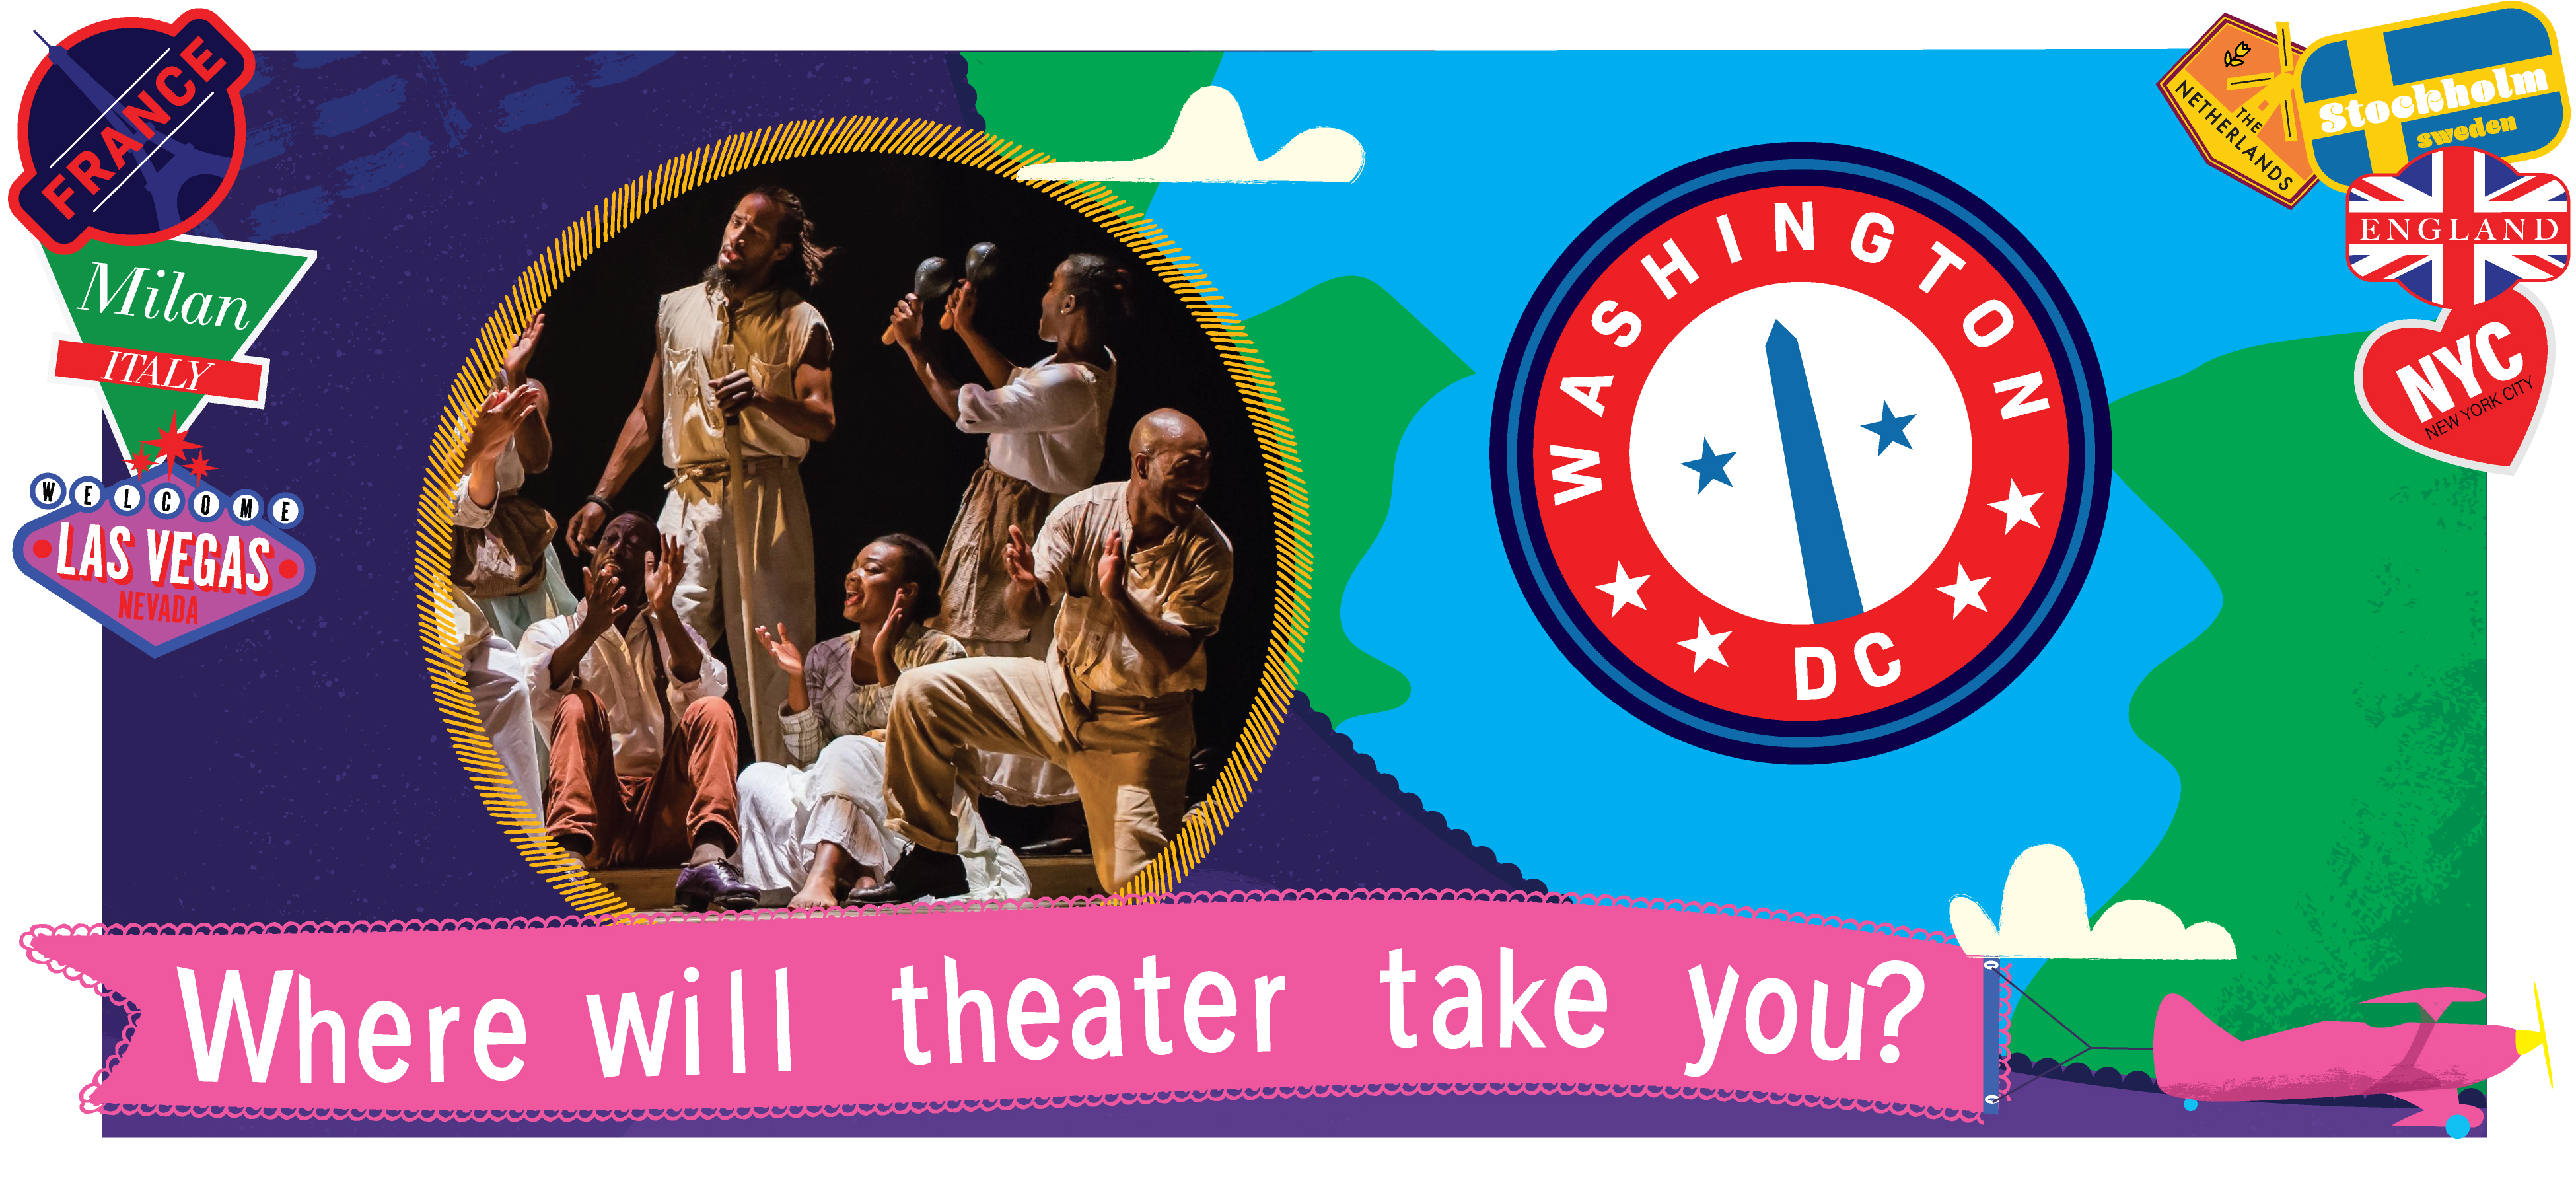 Where will theater take you?